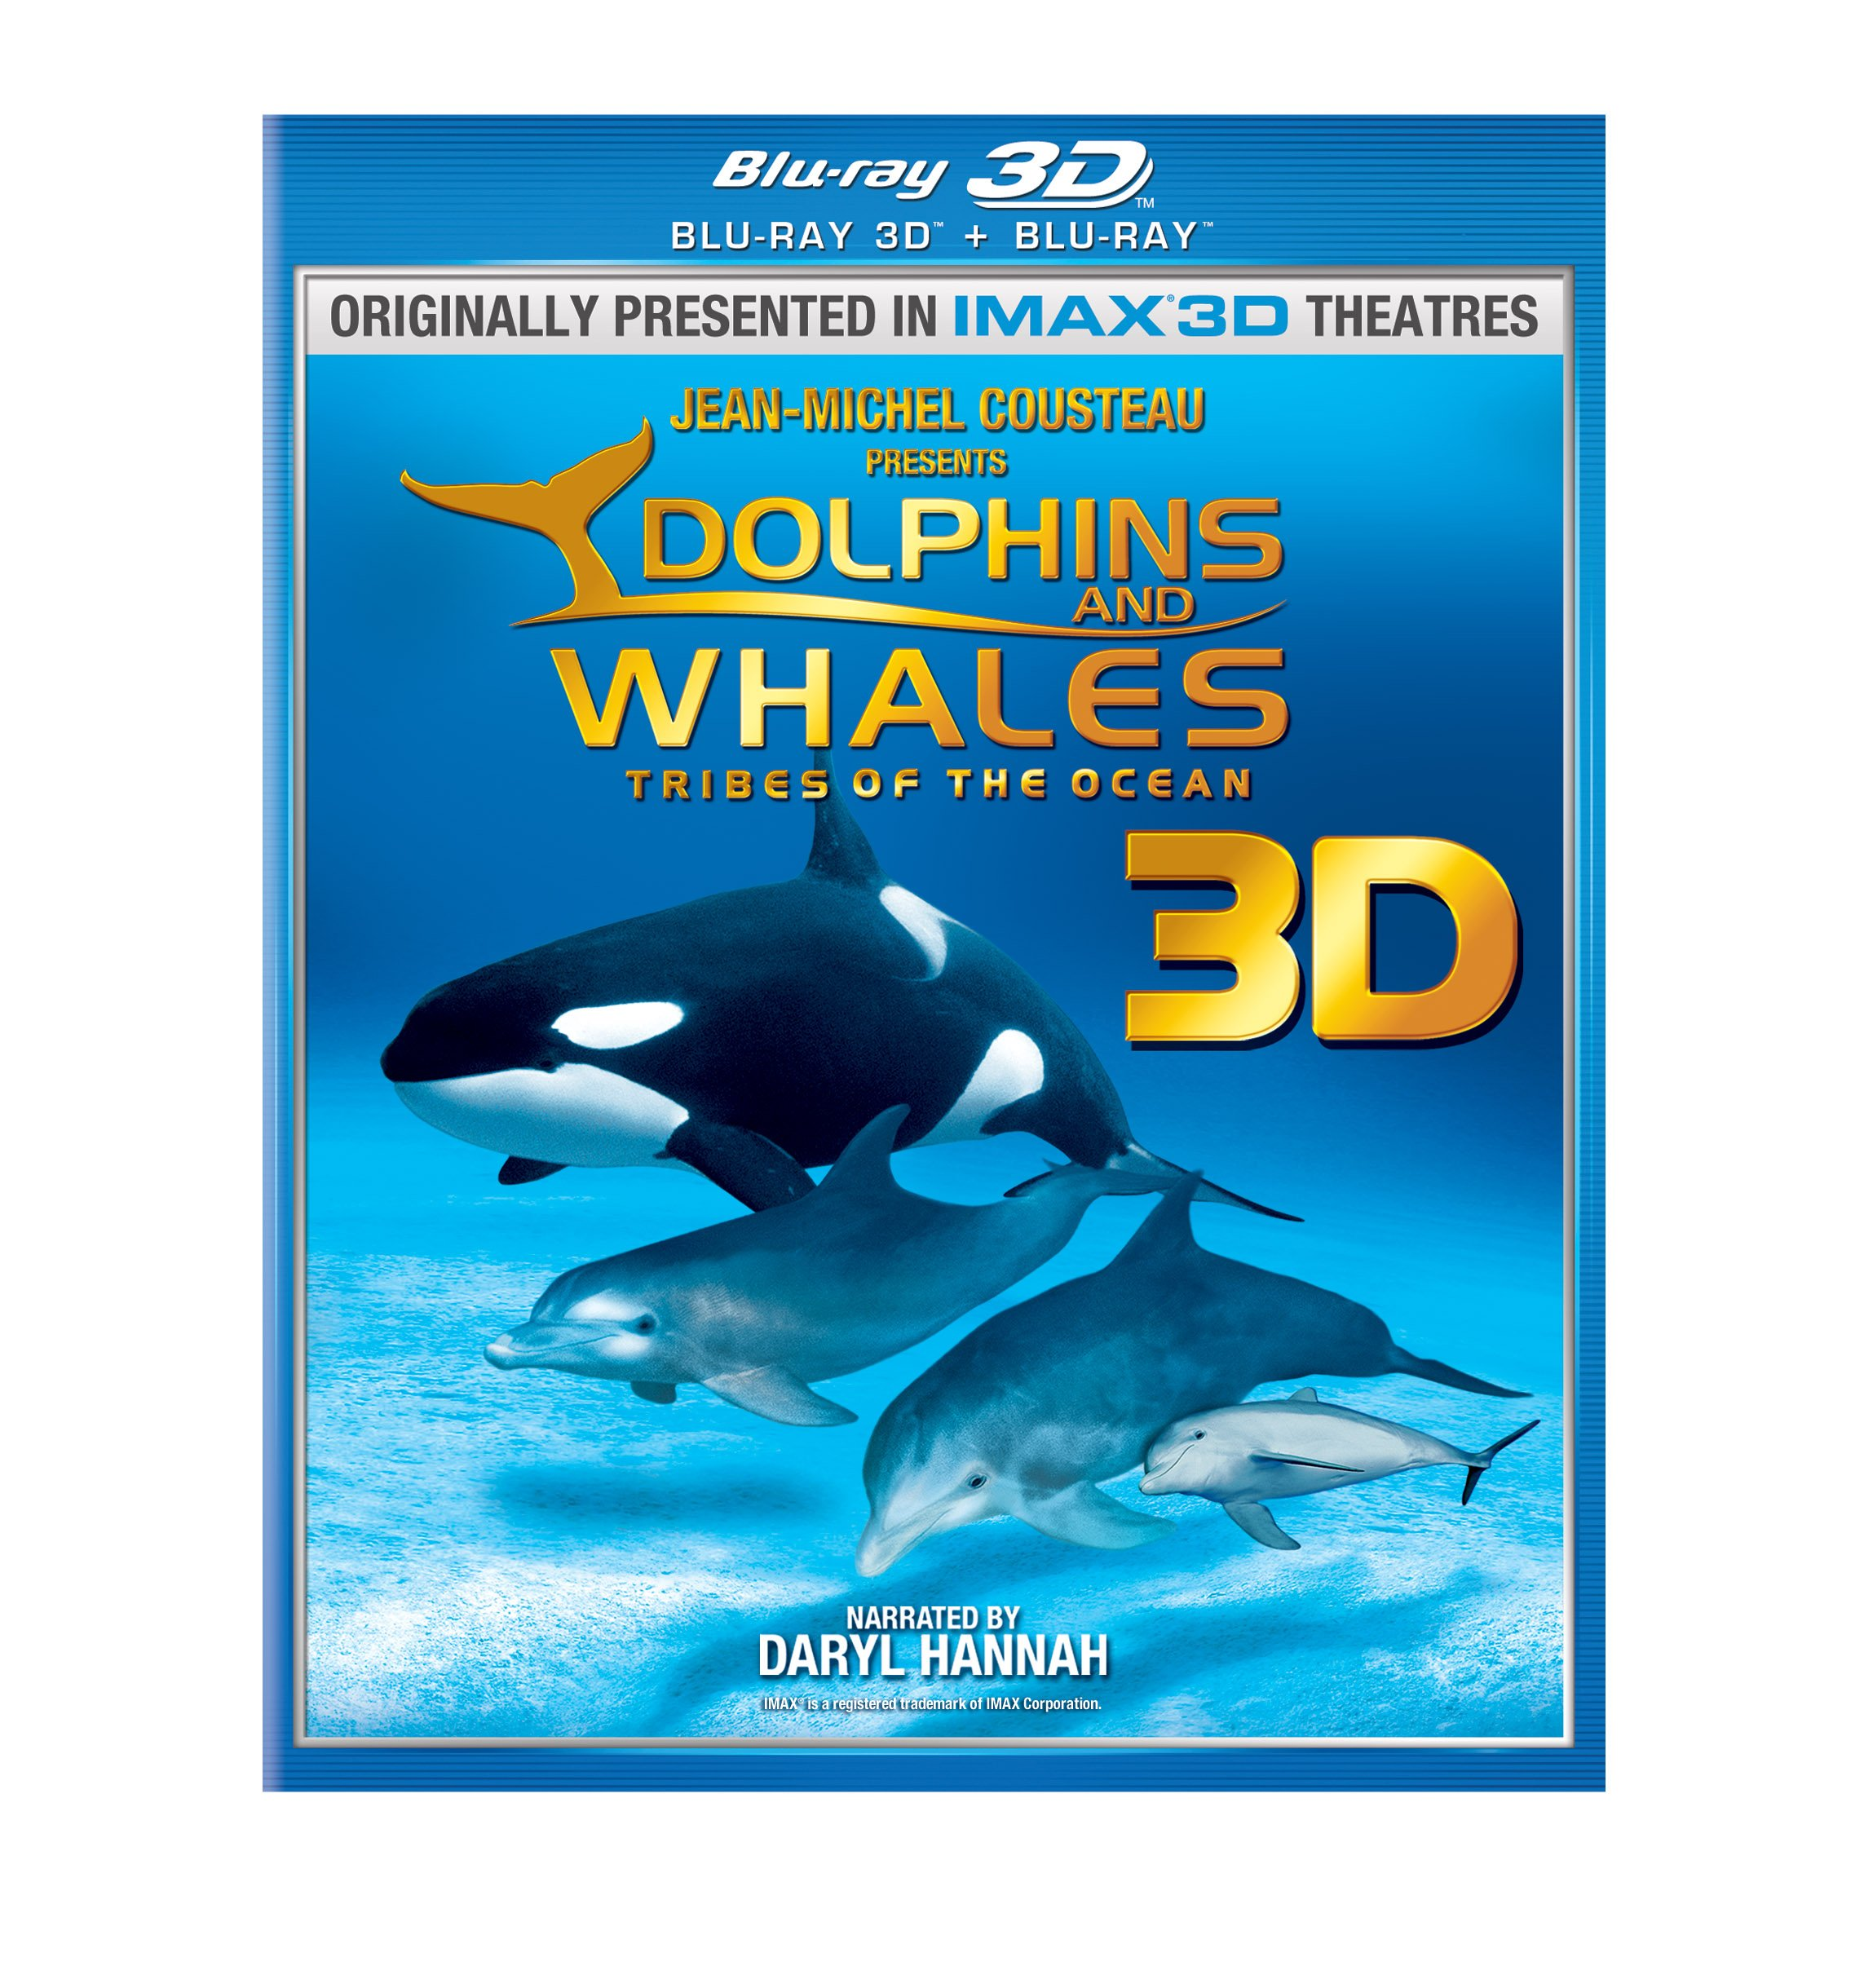 Blu-ray 3D : Dolphins and Whales 3D: Tribes of the Ocean (With Blu-Ray, Lenticular Cover, Slipsleeve Packaging, Widescreen, 3 Dimensional)